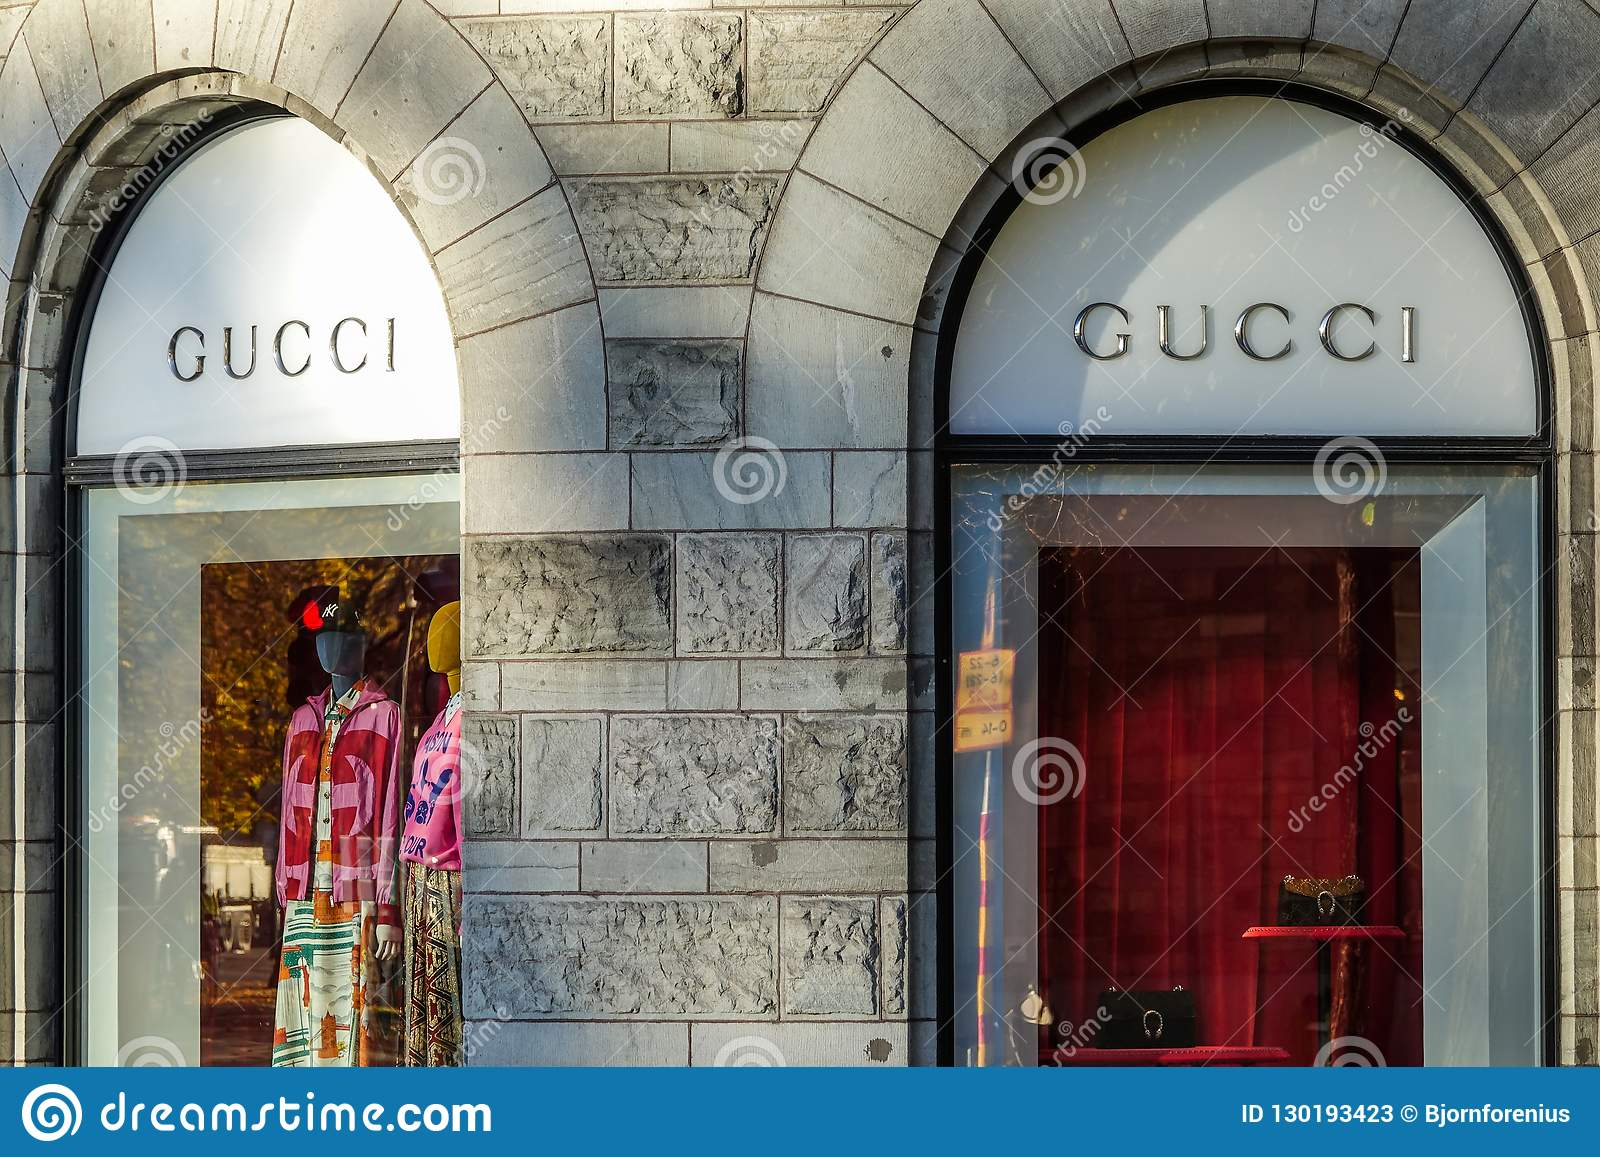 a17c978d400 Gucci Store Front. Italian Luxury Brand Of Fashion And Leather Goods ...